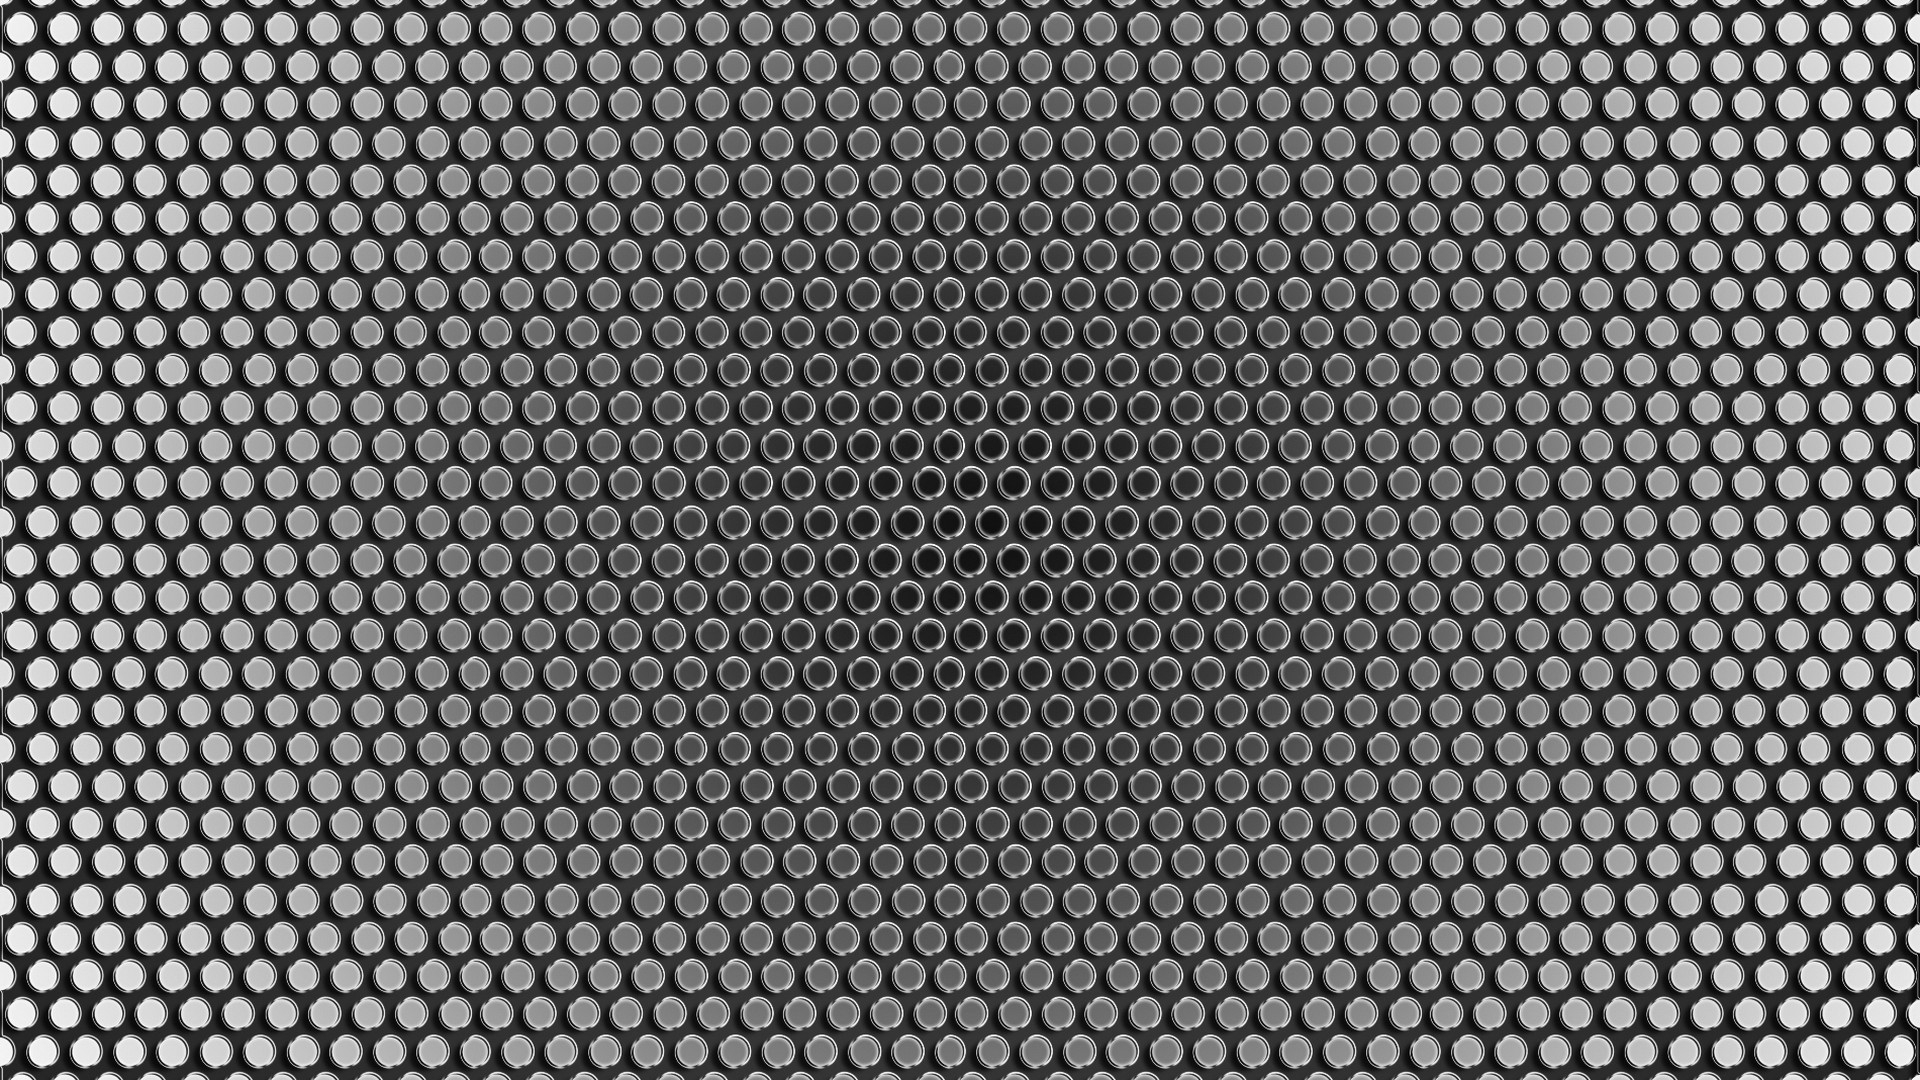 Wallpaper Mesh, Circles, Holes, Metal, Silver HD, Picture, Image